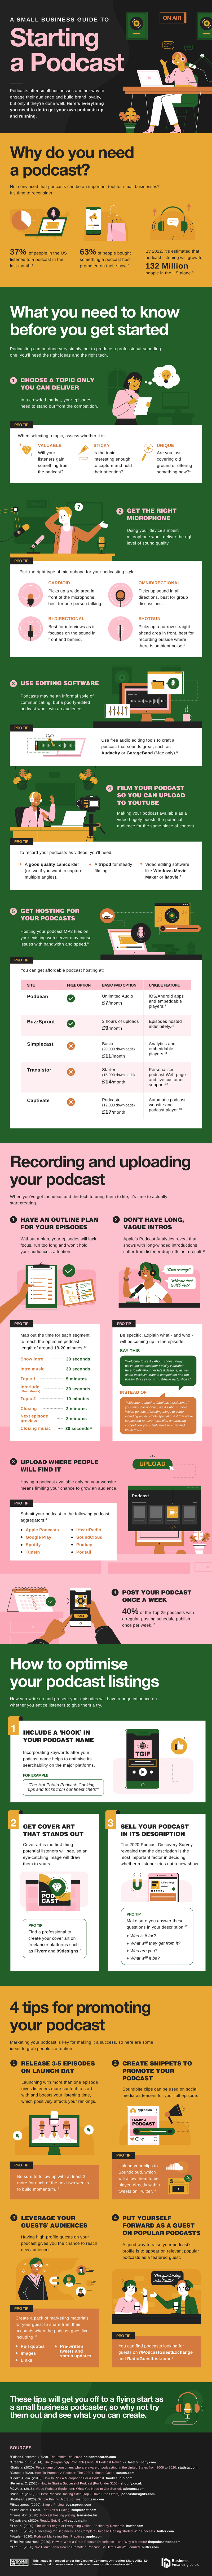 Podcasting infographic